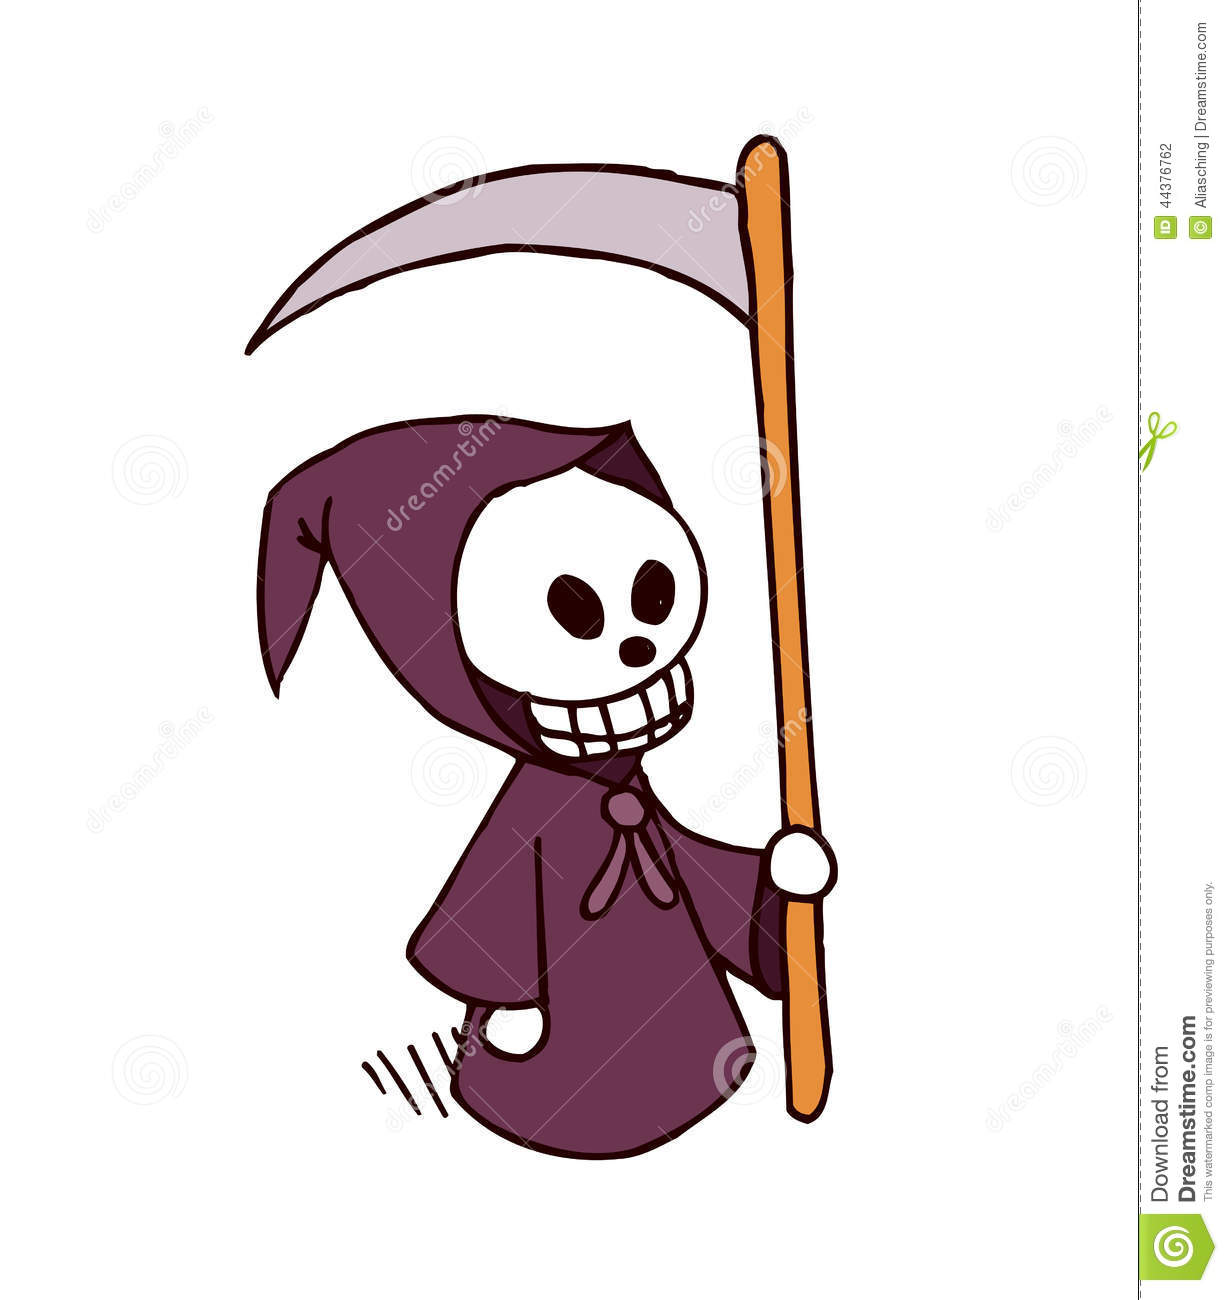 Death Cartoon Character Stock Vector - Image: 44376762